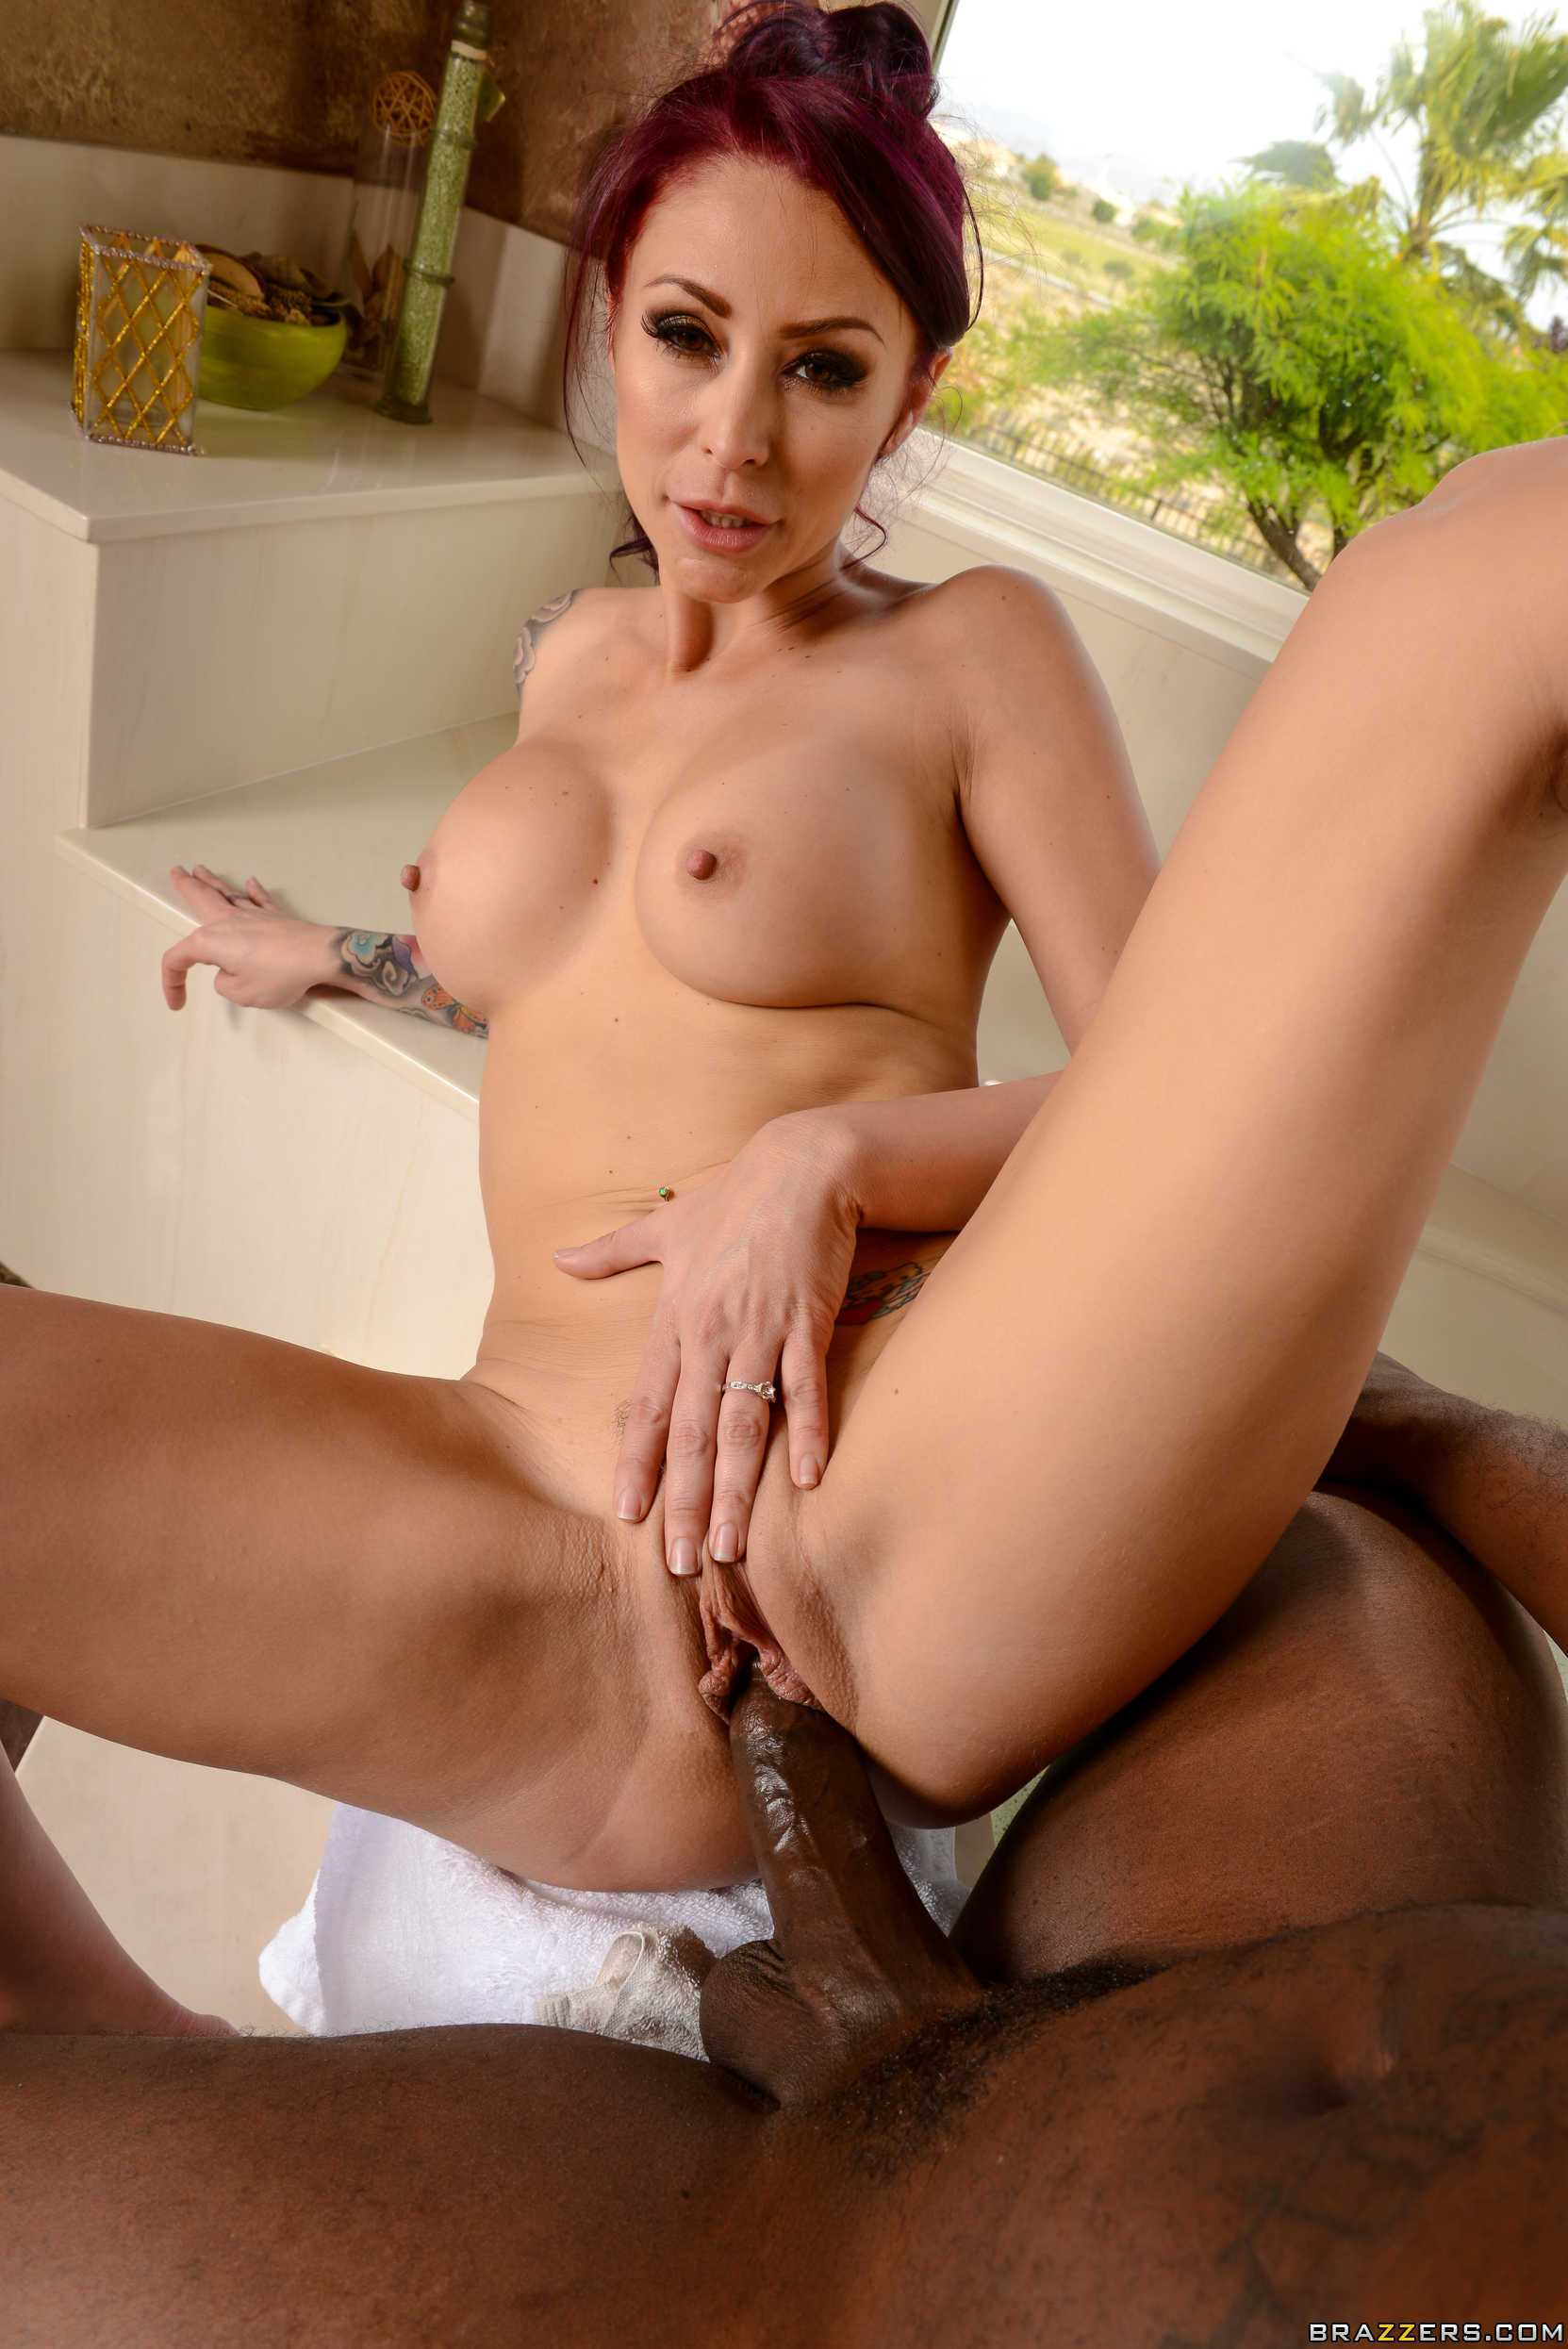 Monique Alexander | Tearing Up Her Rug